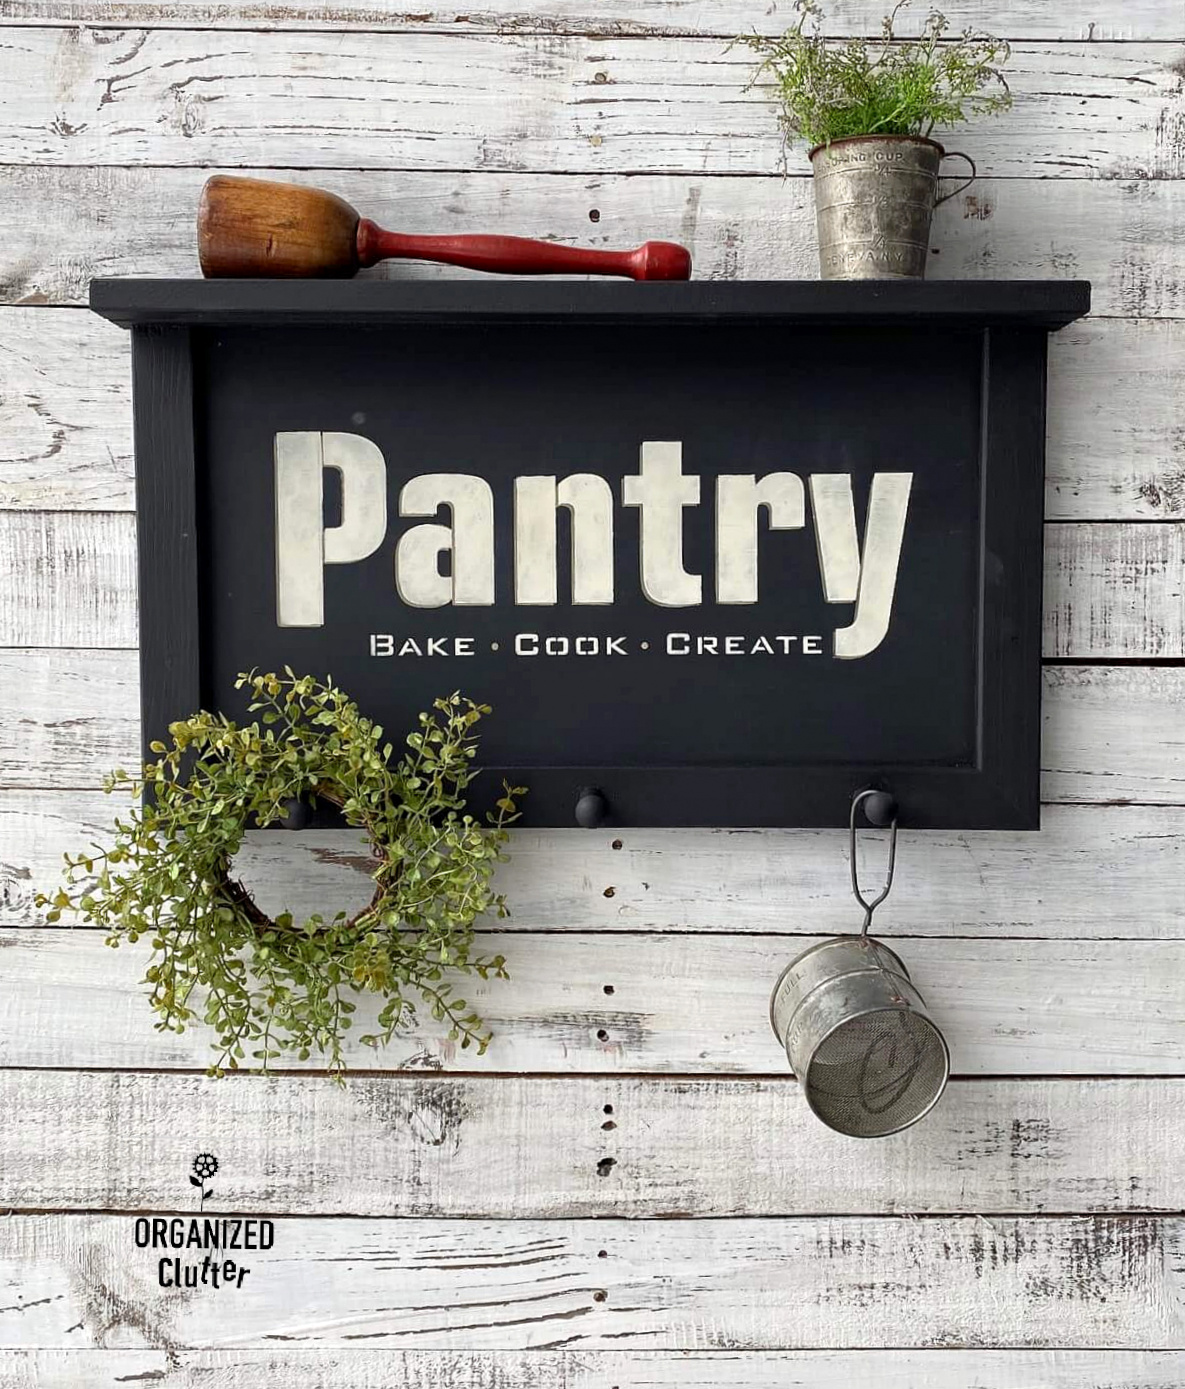 Pantry sign shelf by Organized Clutter, featured on DIY Salvaged Junk Projects 564 on Funky Junk!